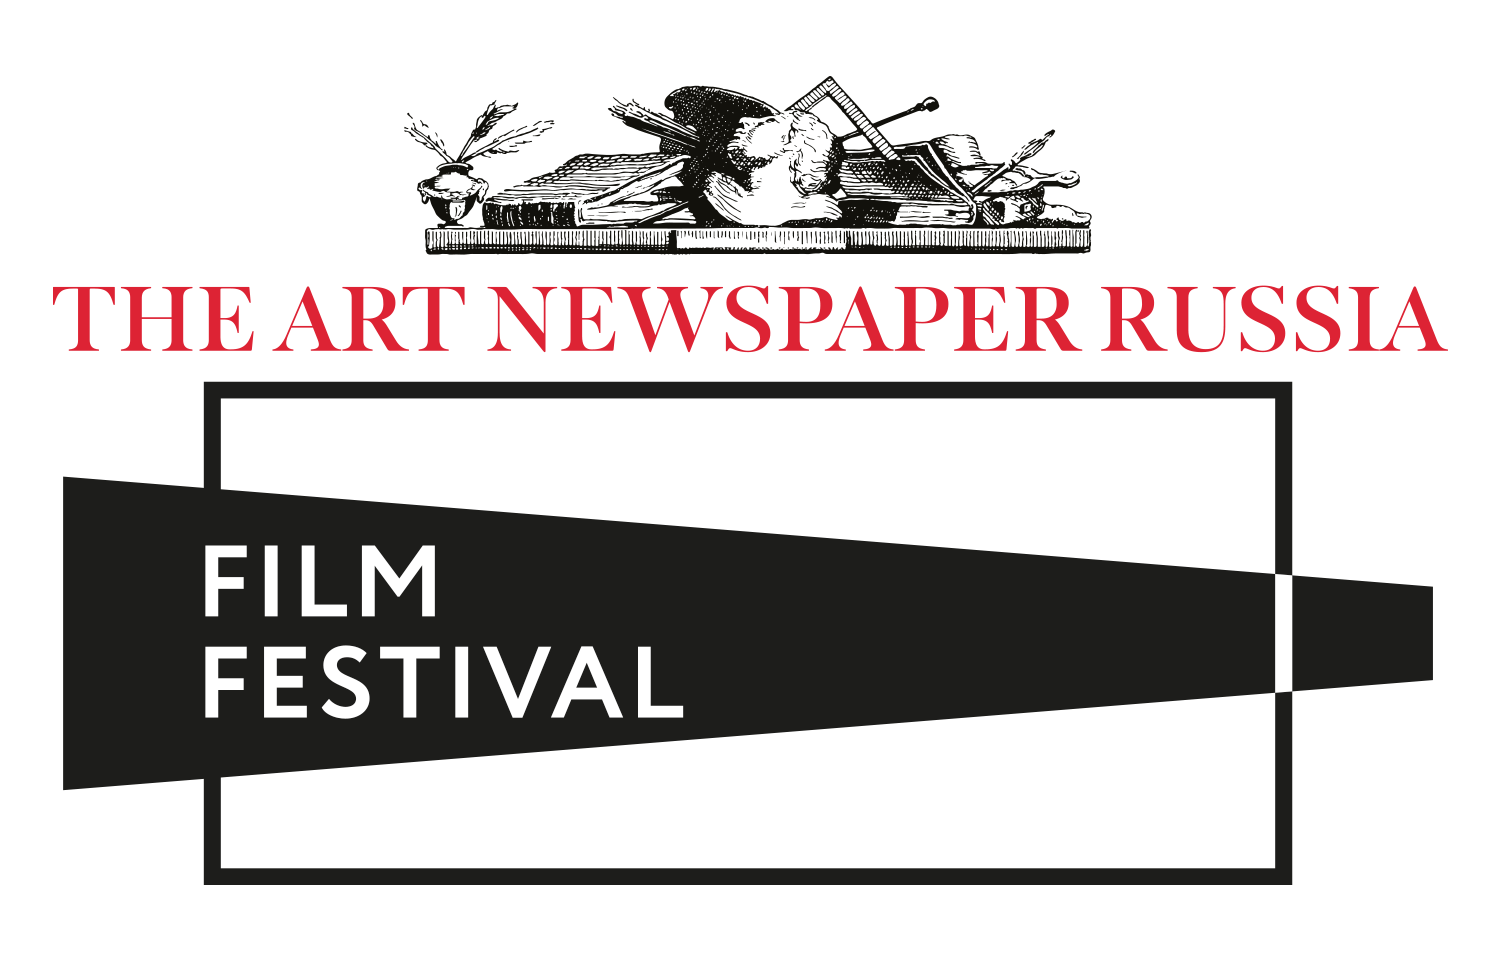 The ART Newspaper Russia FILM FESTIVAL